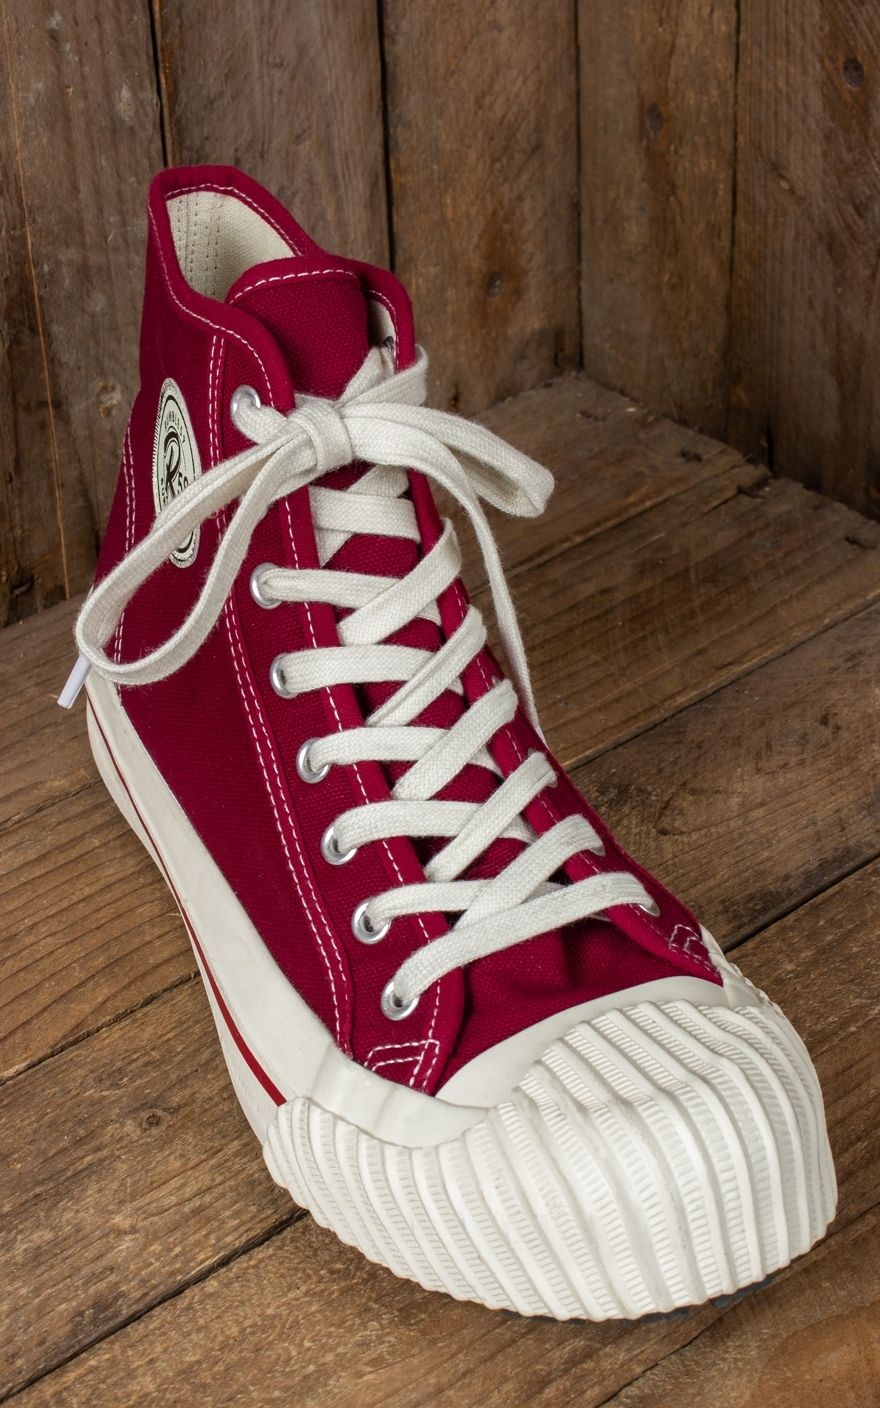 Vintage Schuhe Rumble59 Sneaker Vintage Style Bodensee